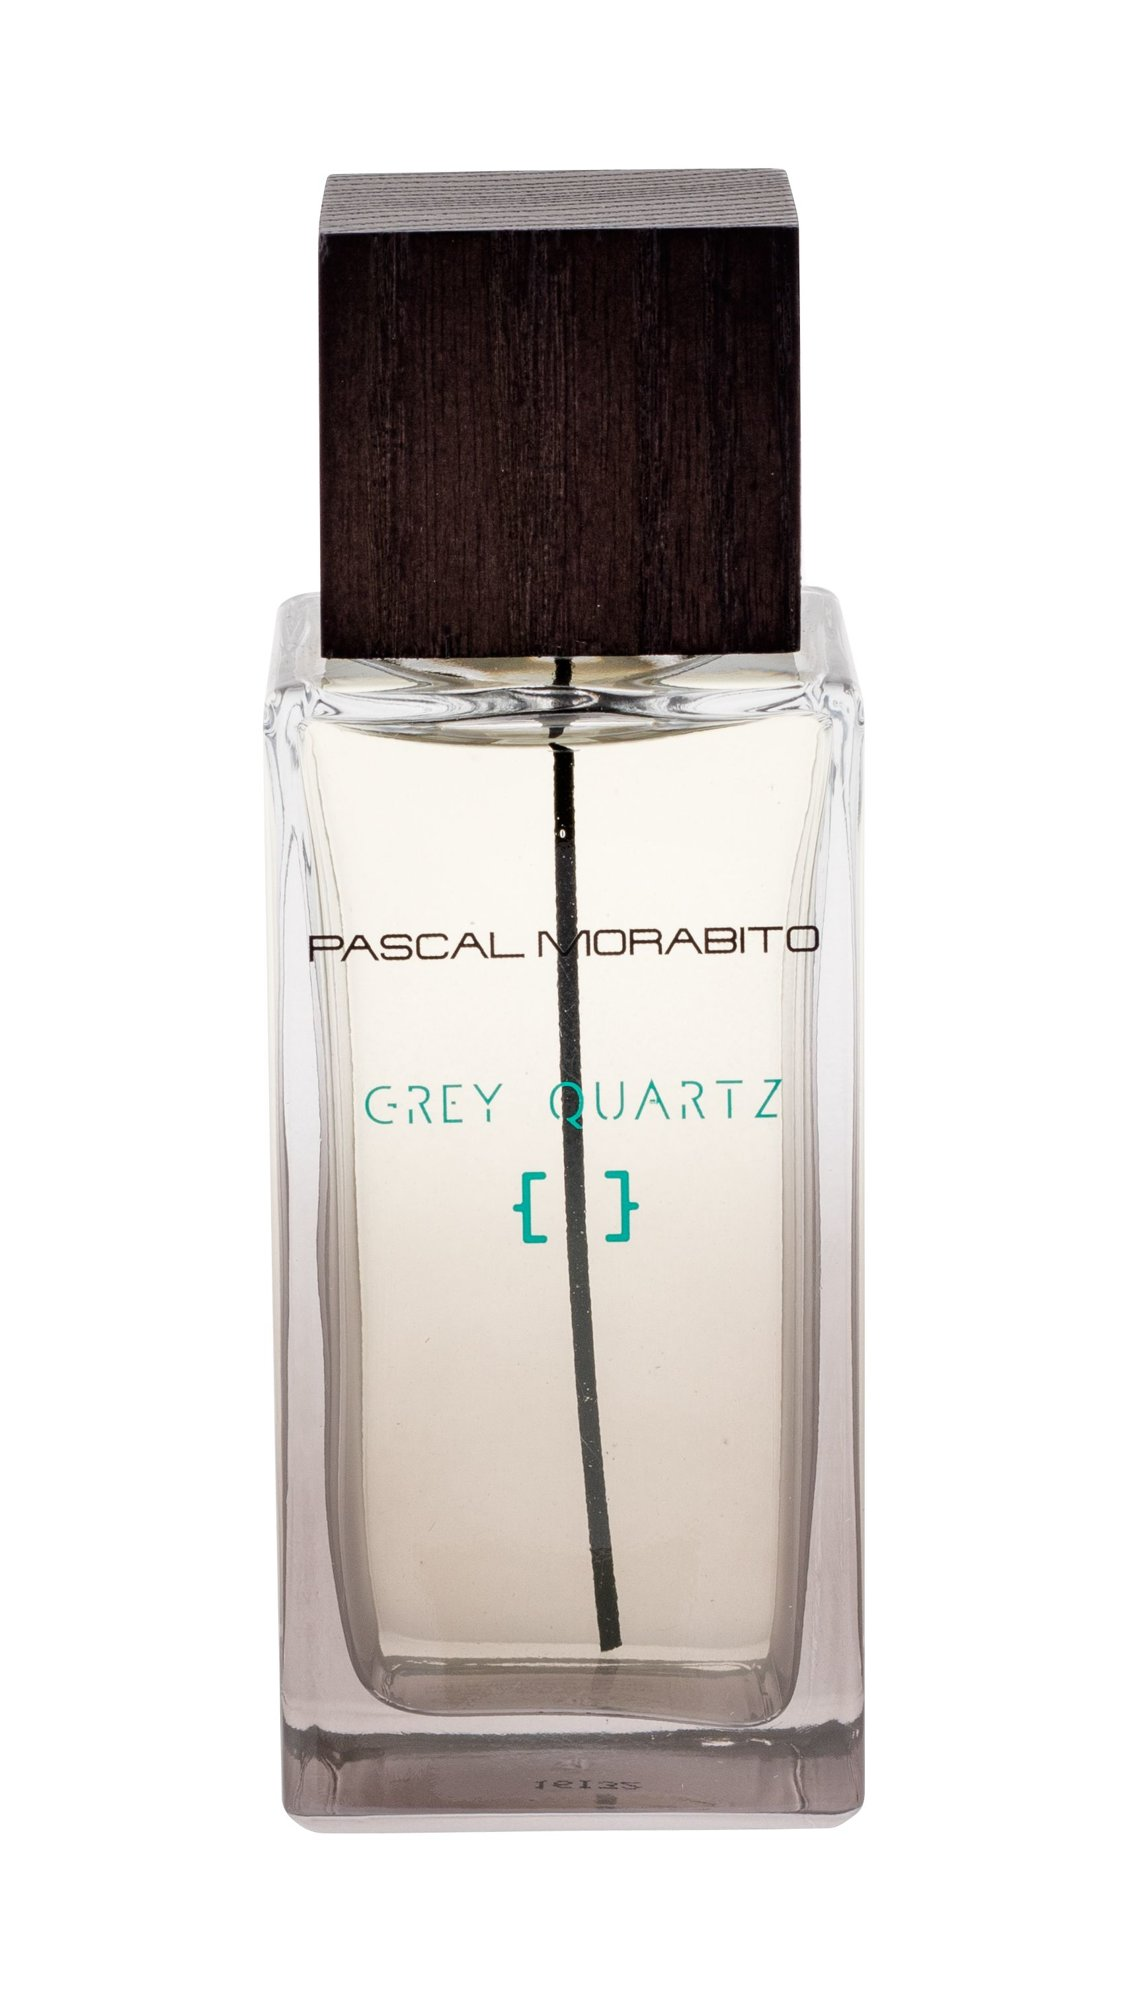 Pascal Morabito Grey Quartz EDT 100ml